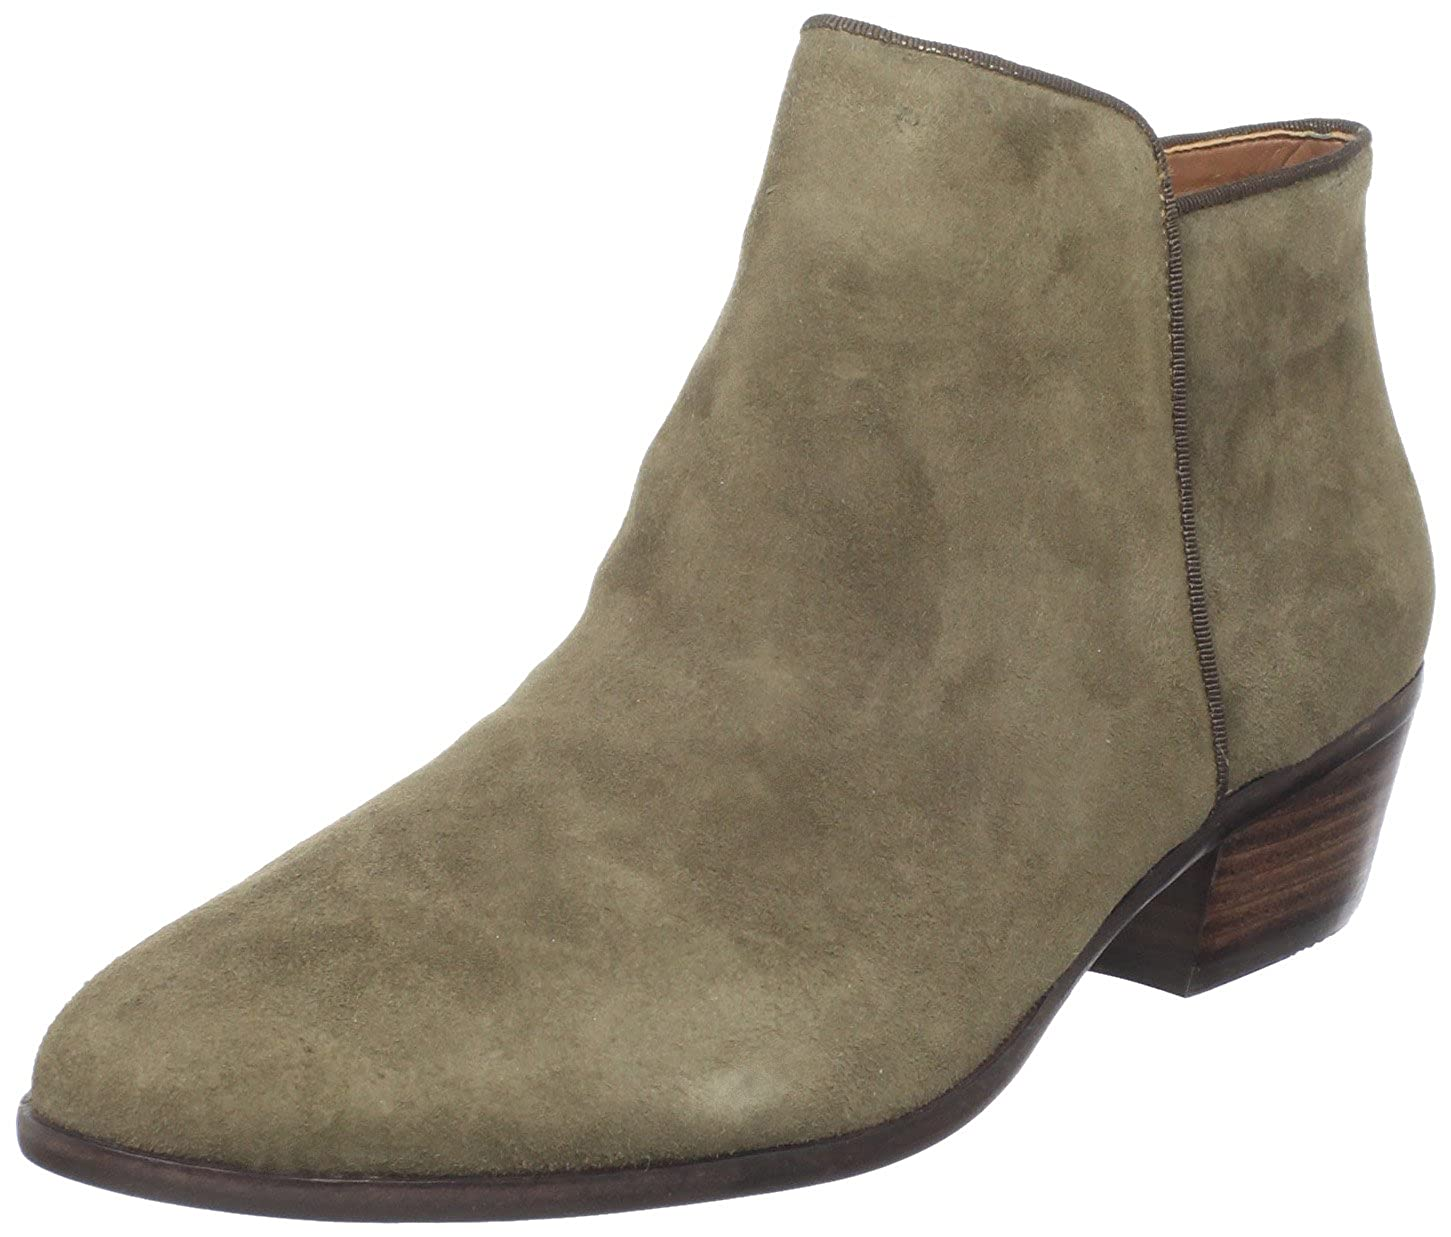 Moss Green Sam Edelman Women's Petty Boot